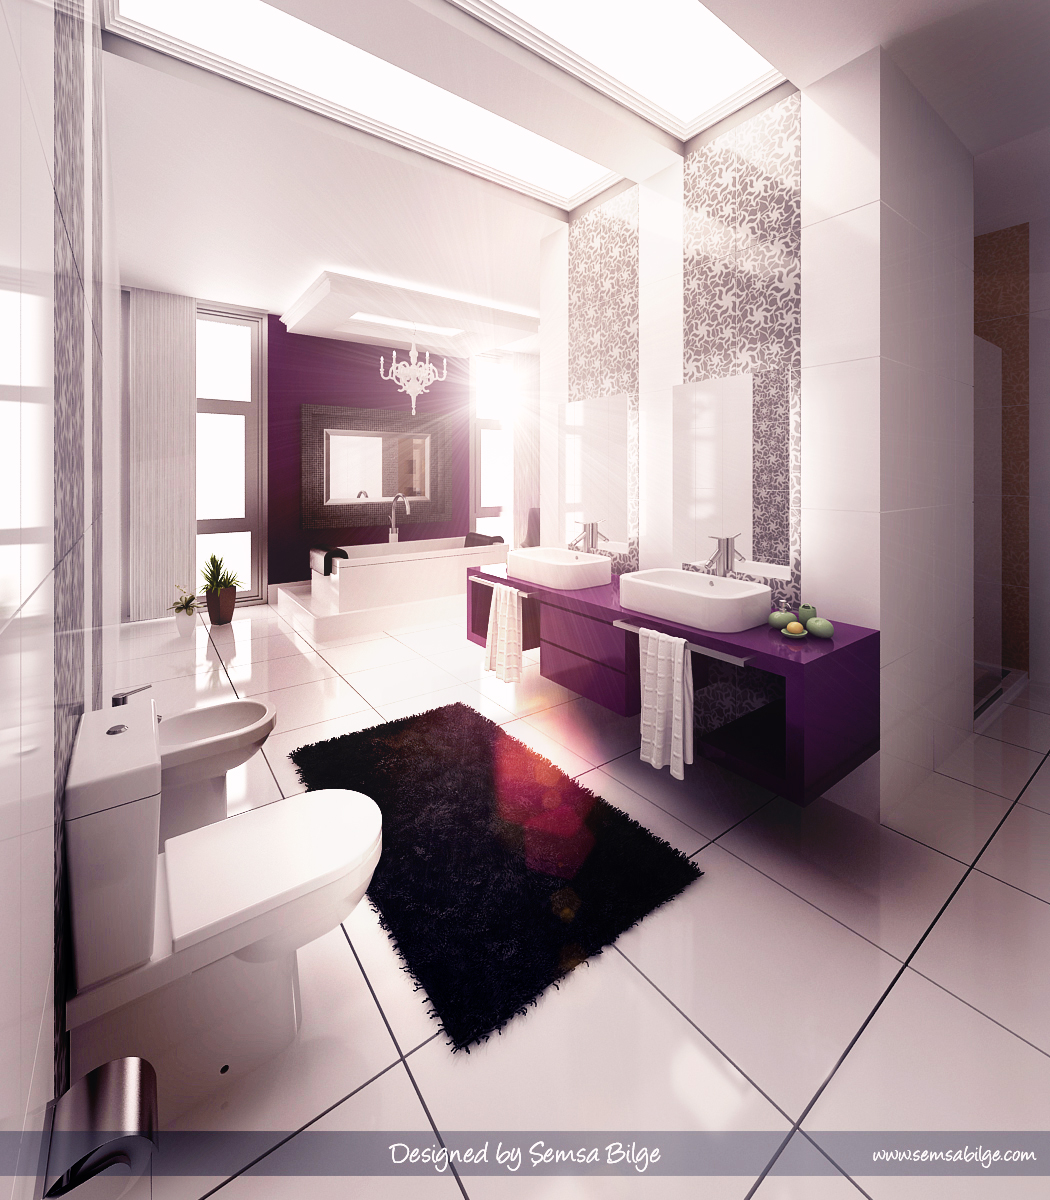 Inspiring bathroom designs for the soul for Design your bathroom